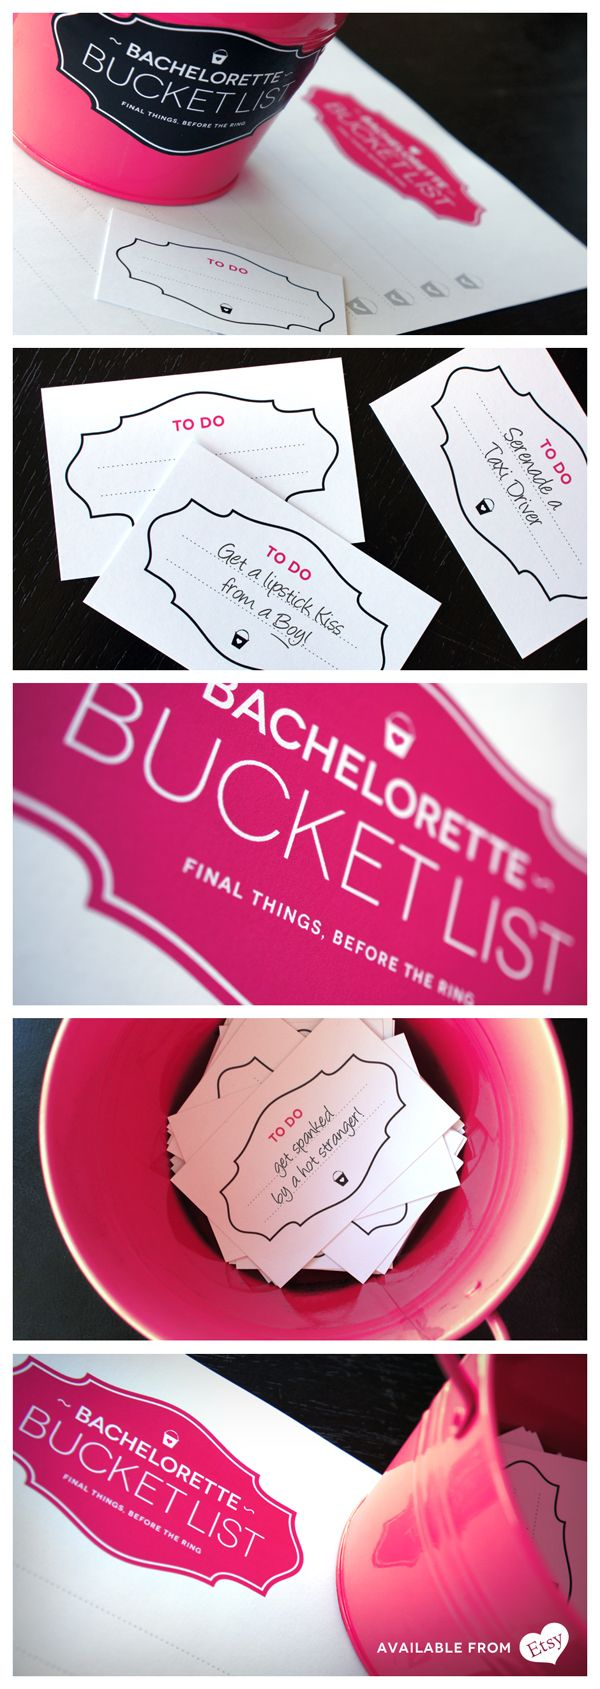 Bachelorette Bucket List - Game #bachelorette #party #idea